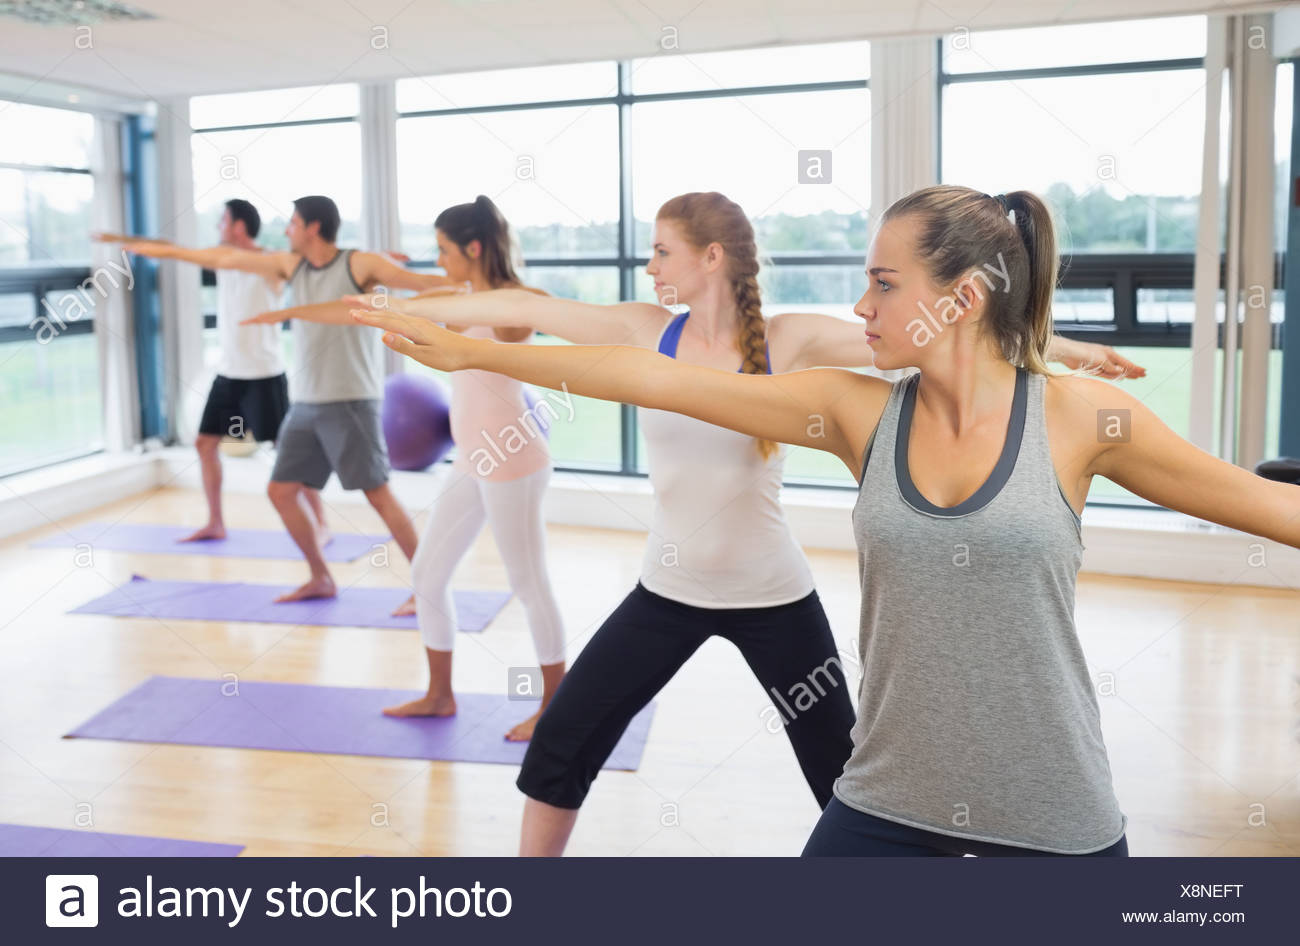 Sporty people stretching hands at yoga class - Stock Image